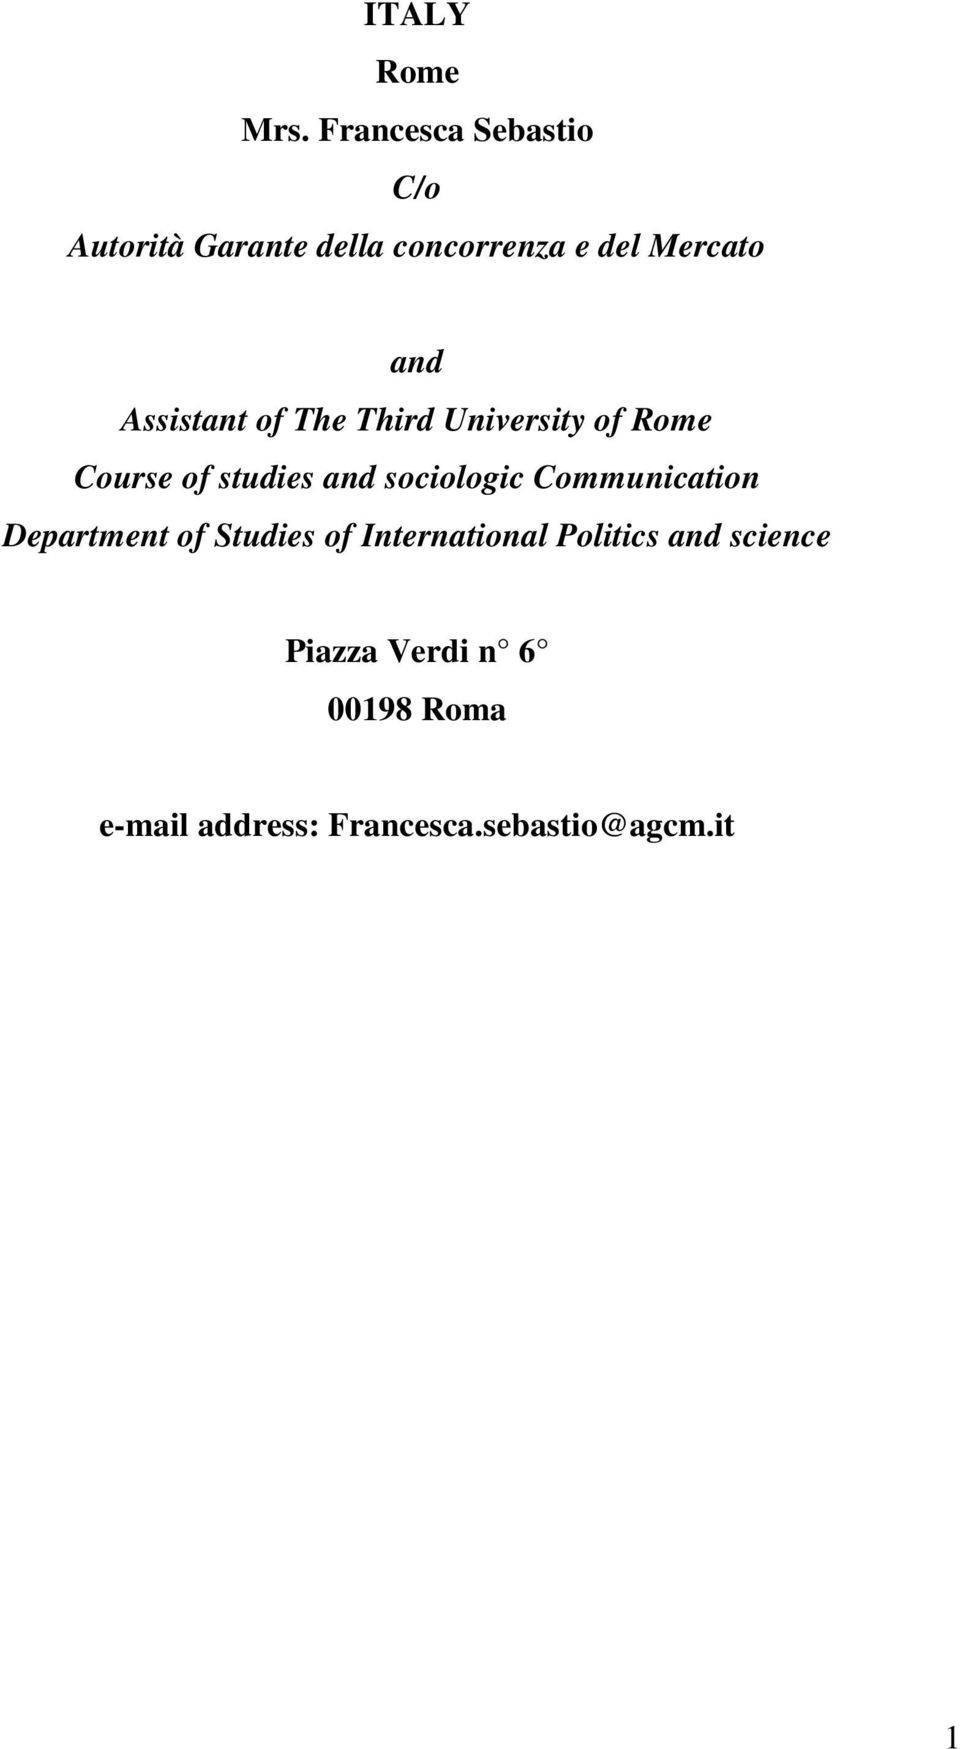 Assistant of The Third University of Rome Course of studies and sociologic